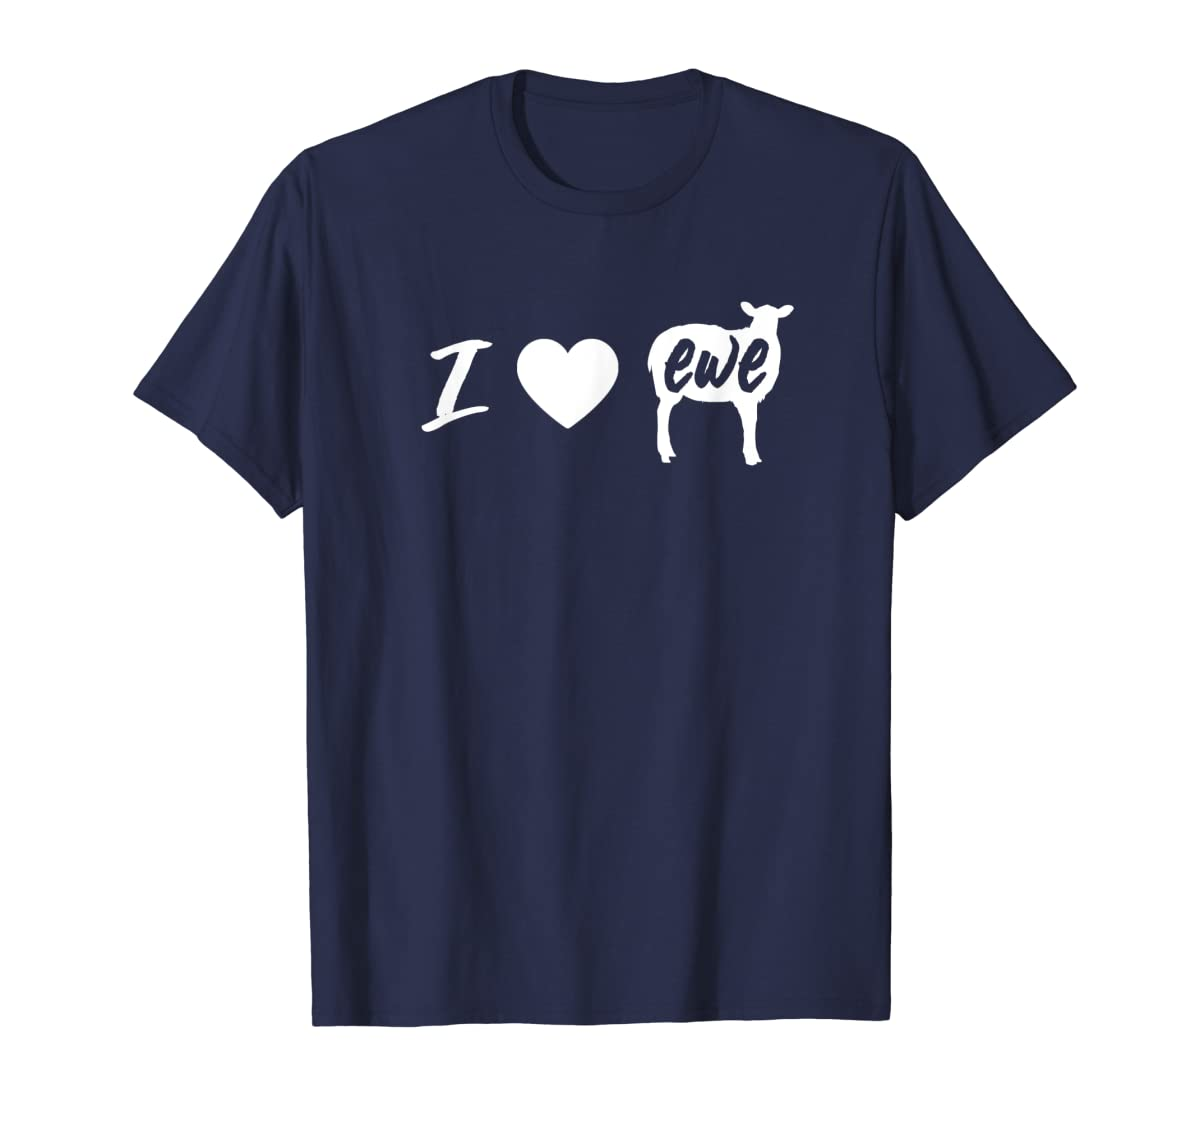 I Love Ewe - I Love You Sheep Pun Shirt-Men's T-Shirt-Navy